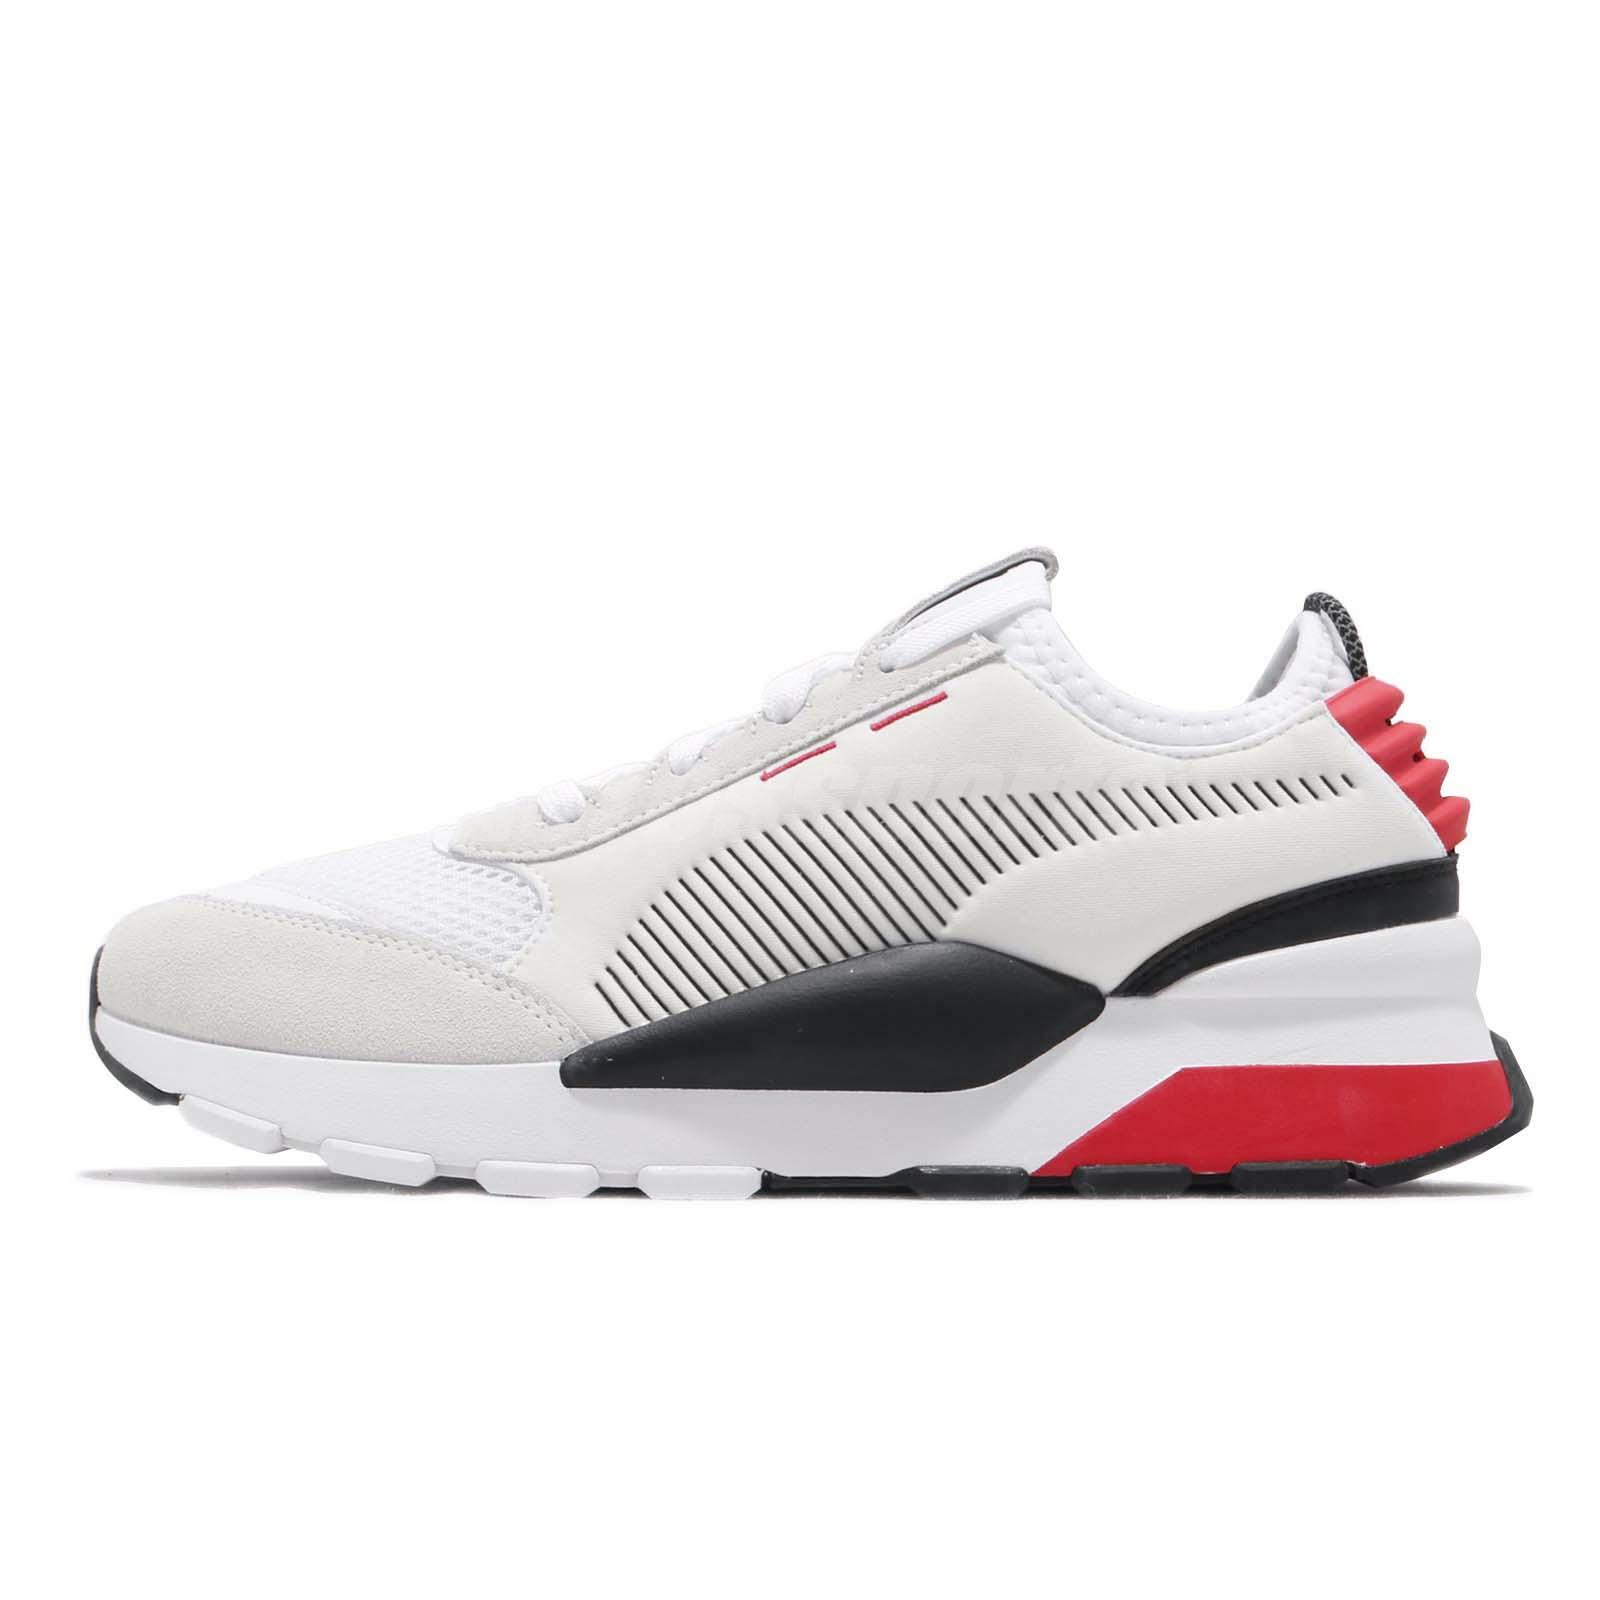 Puma RS-0 Winter INJ Toys Running System White Red Men Shoes Sneakers 369469 -01 537f6f00e